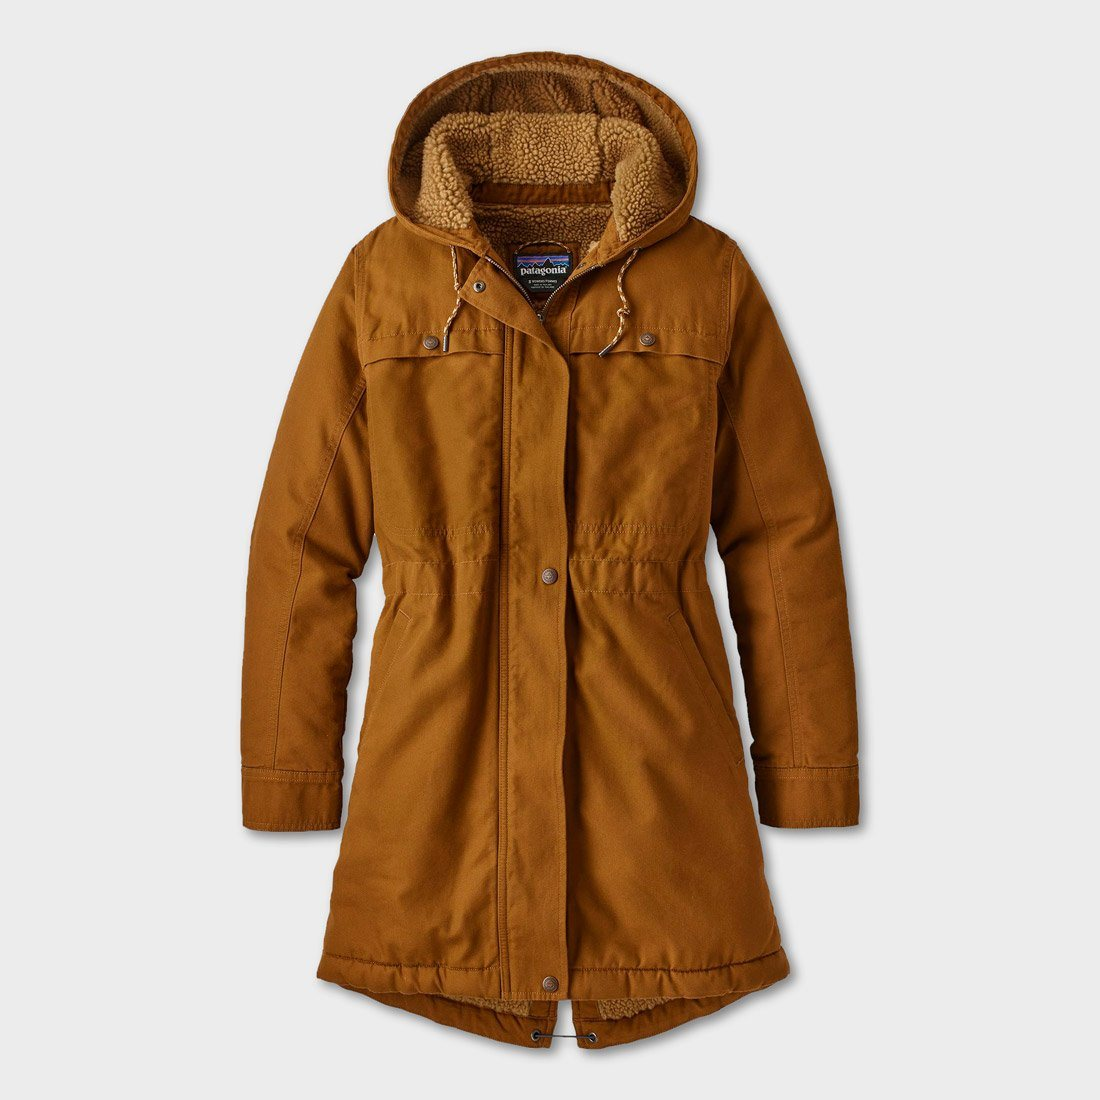 Patagonia Women's Insulated Prairie Dawn Parka Bence Brown